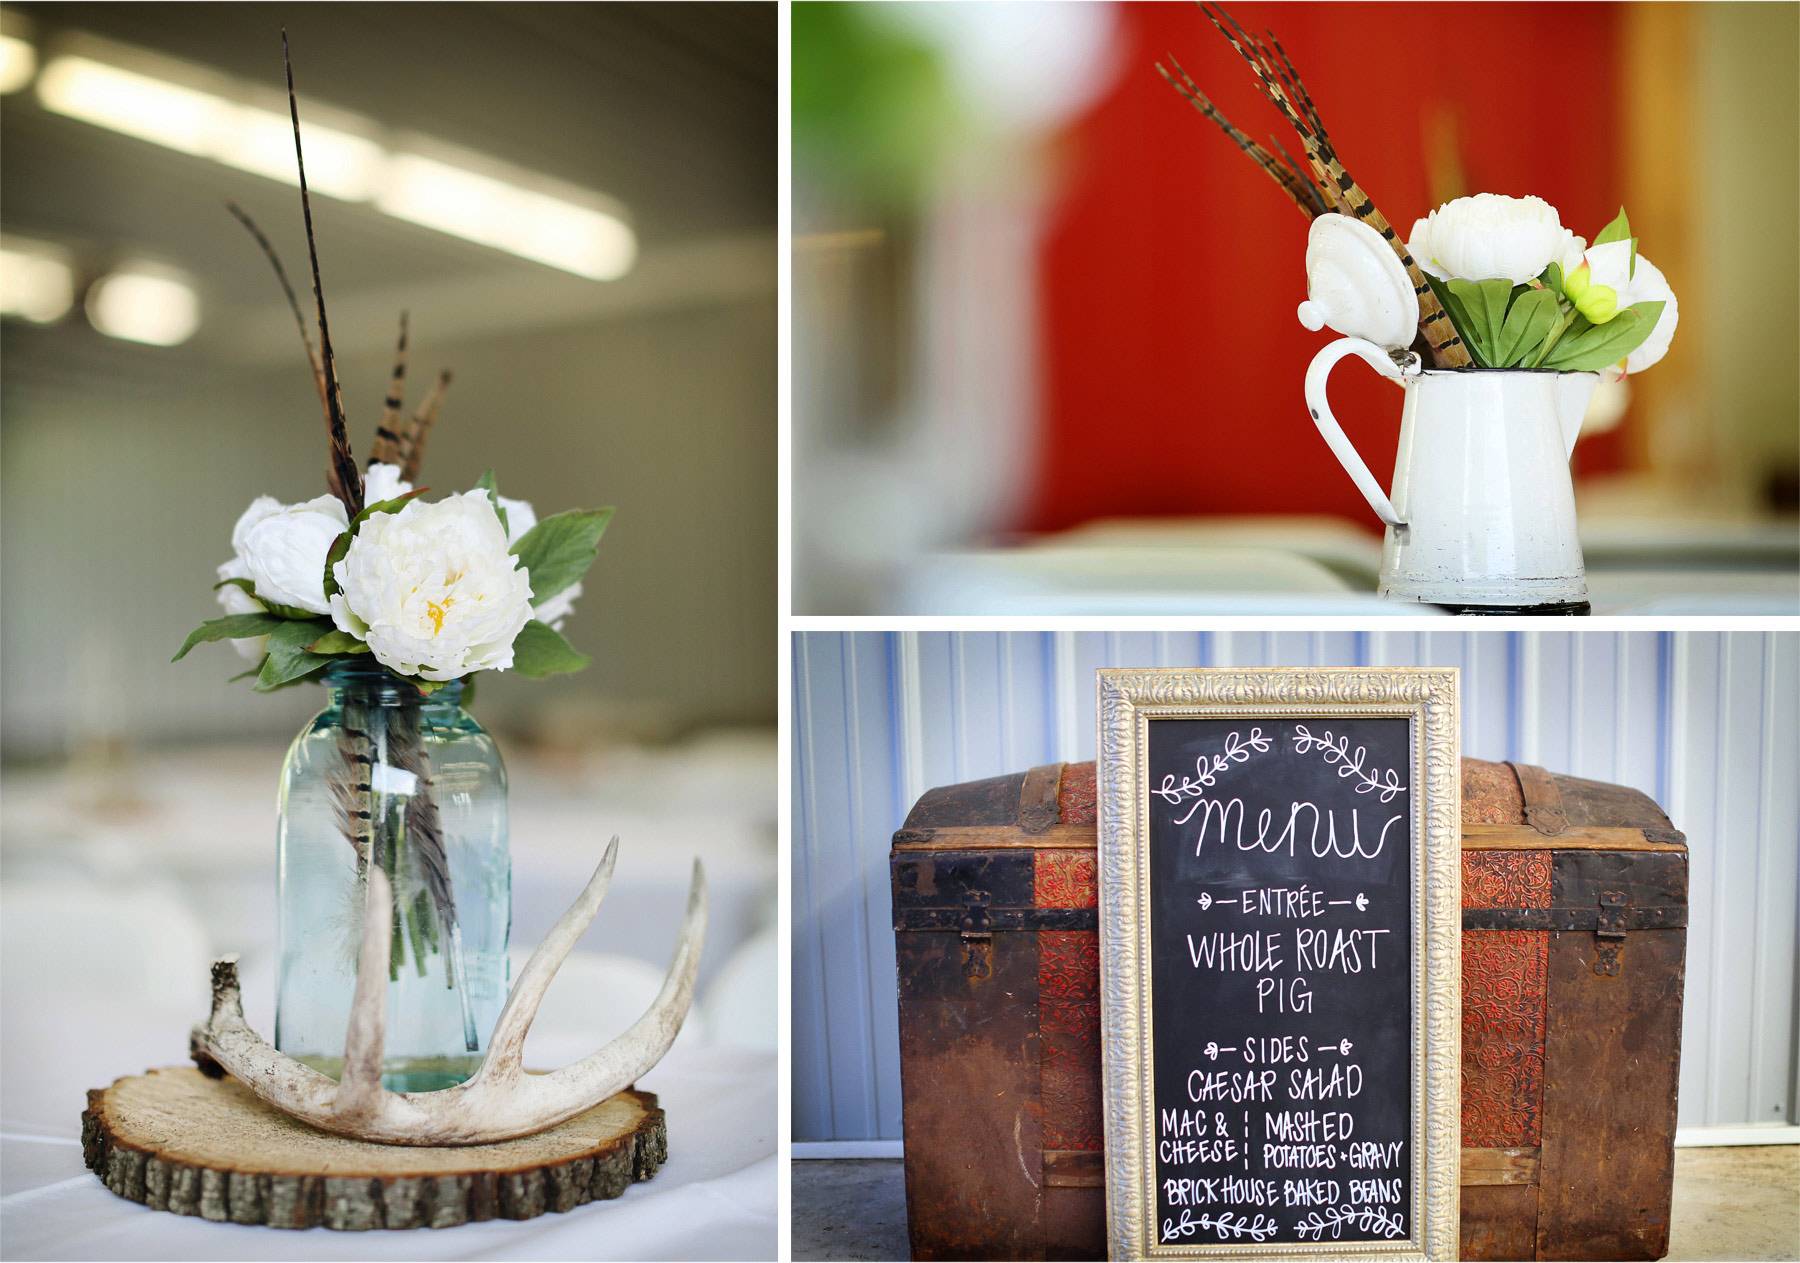 30-South-Haven-Minnesota-Wedding-Photographer-by-Andrew-Vick-Photography-Summer-Tomala-Farm-Reception-Details-Decorations-Flowers-Sign-Renee-and-Bobb.jpg